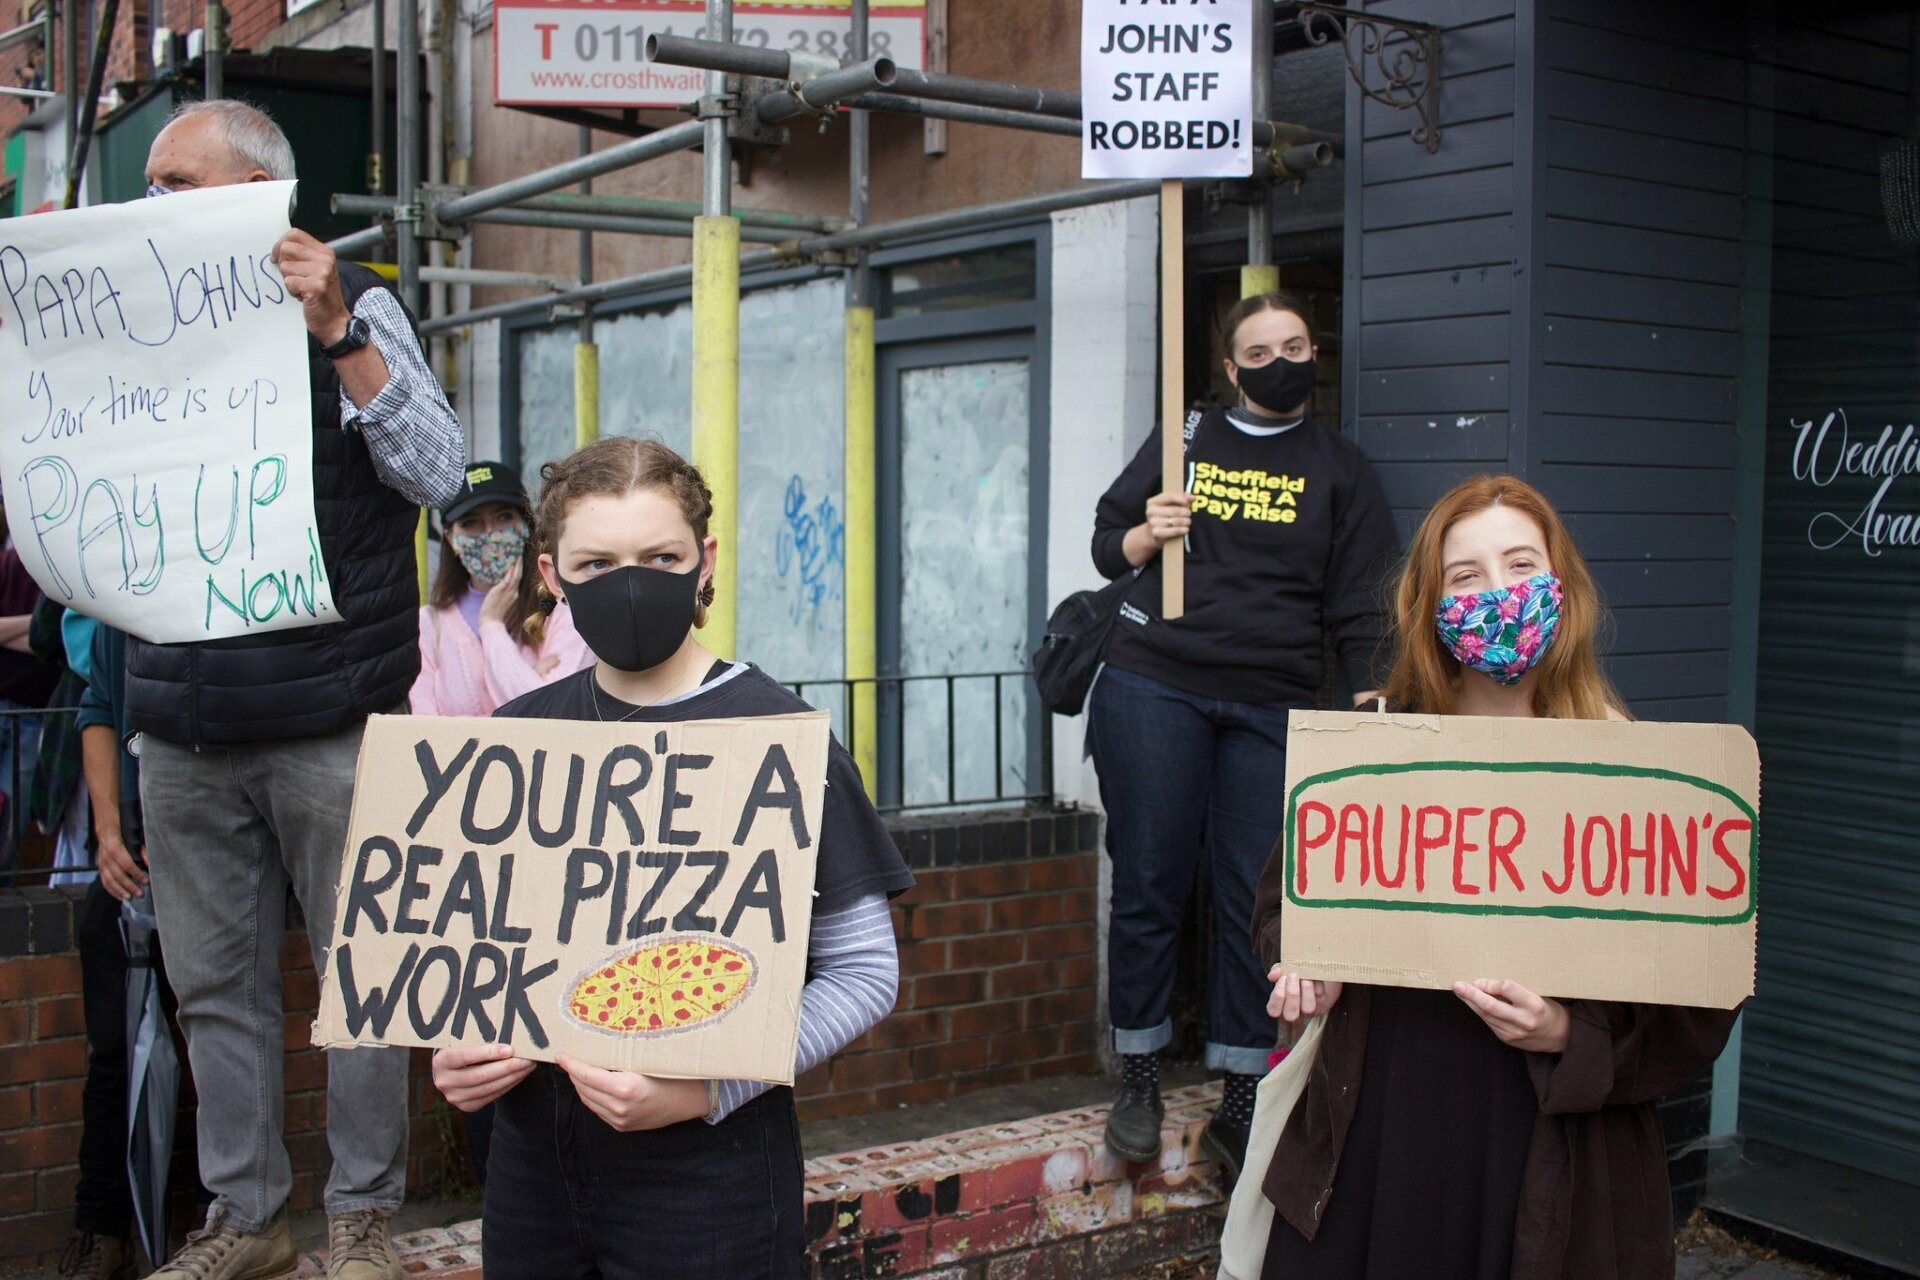 SNAP Sheffield Needs A Pay Rise papa johns protest action